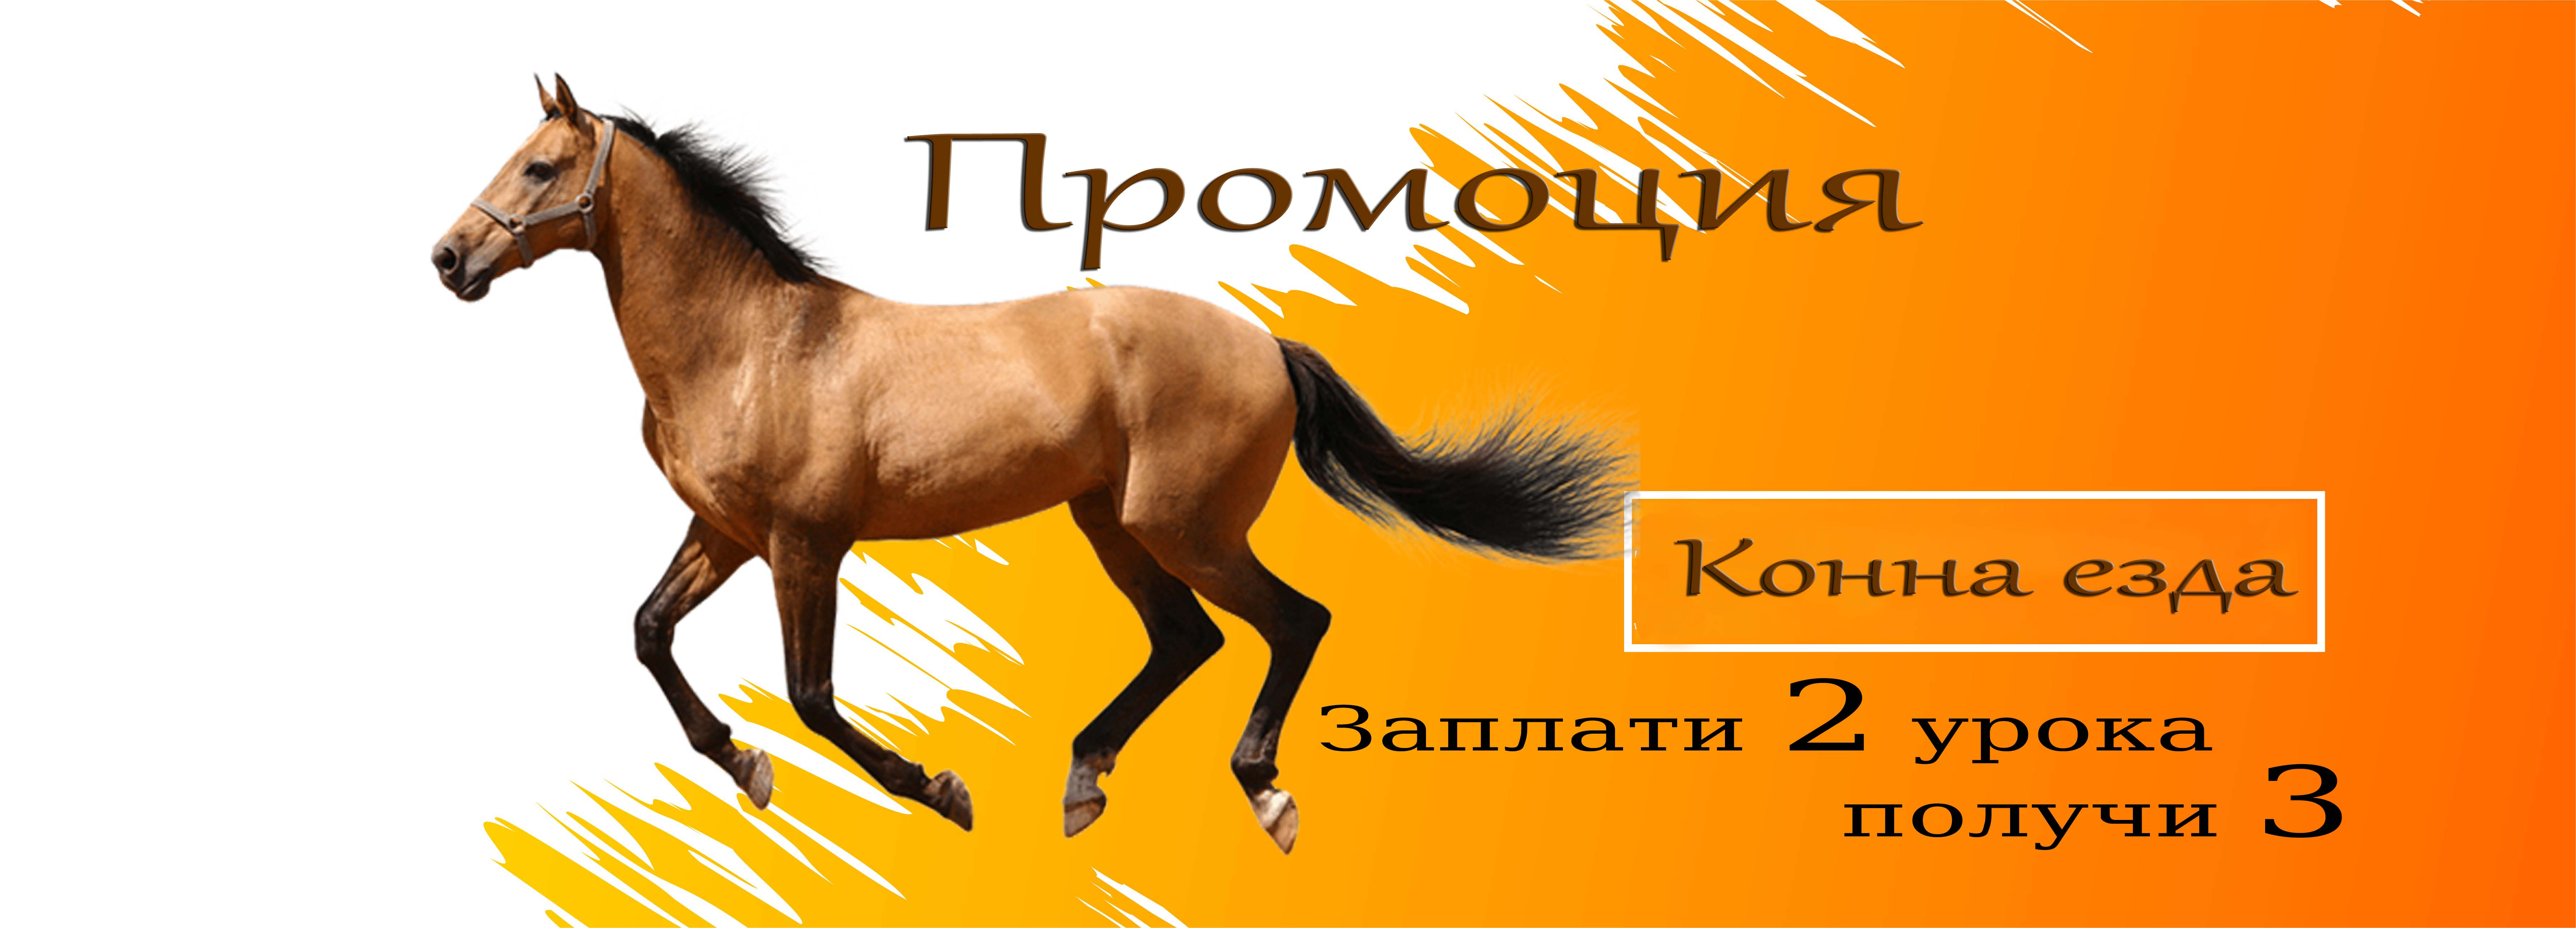 horseriding promotion